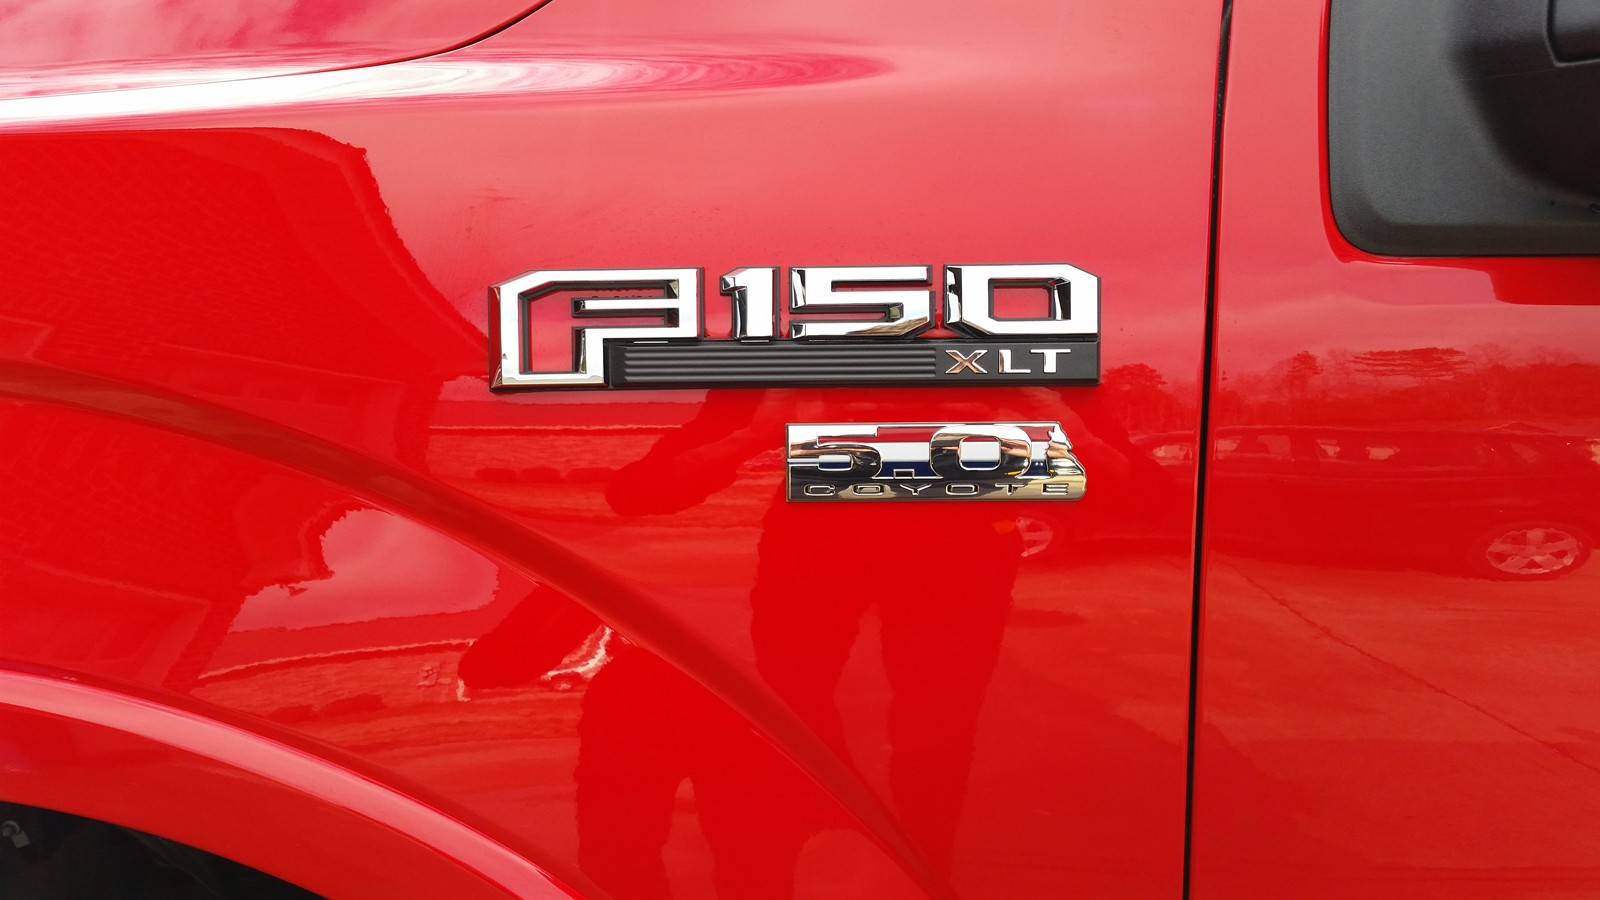 2011 2014 Mustang Gt F 150 5 0 Coyote Chrome Emblem